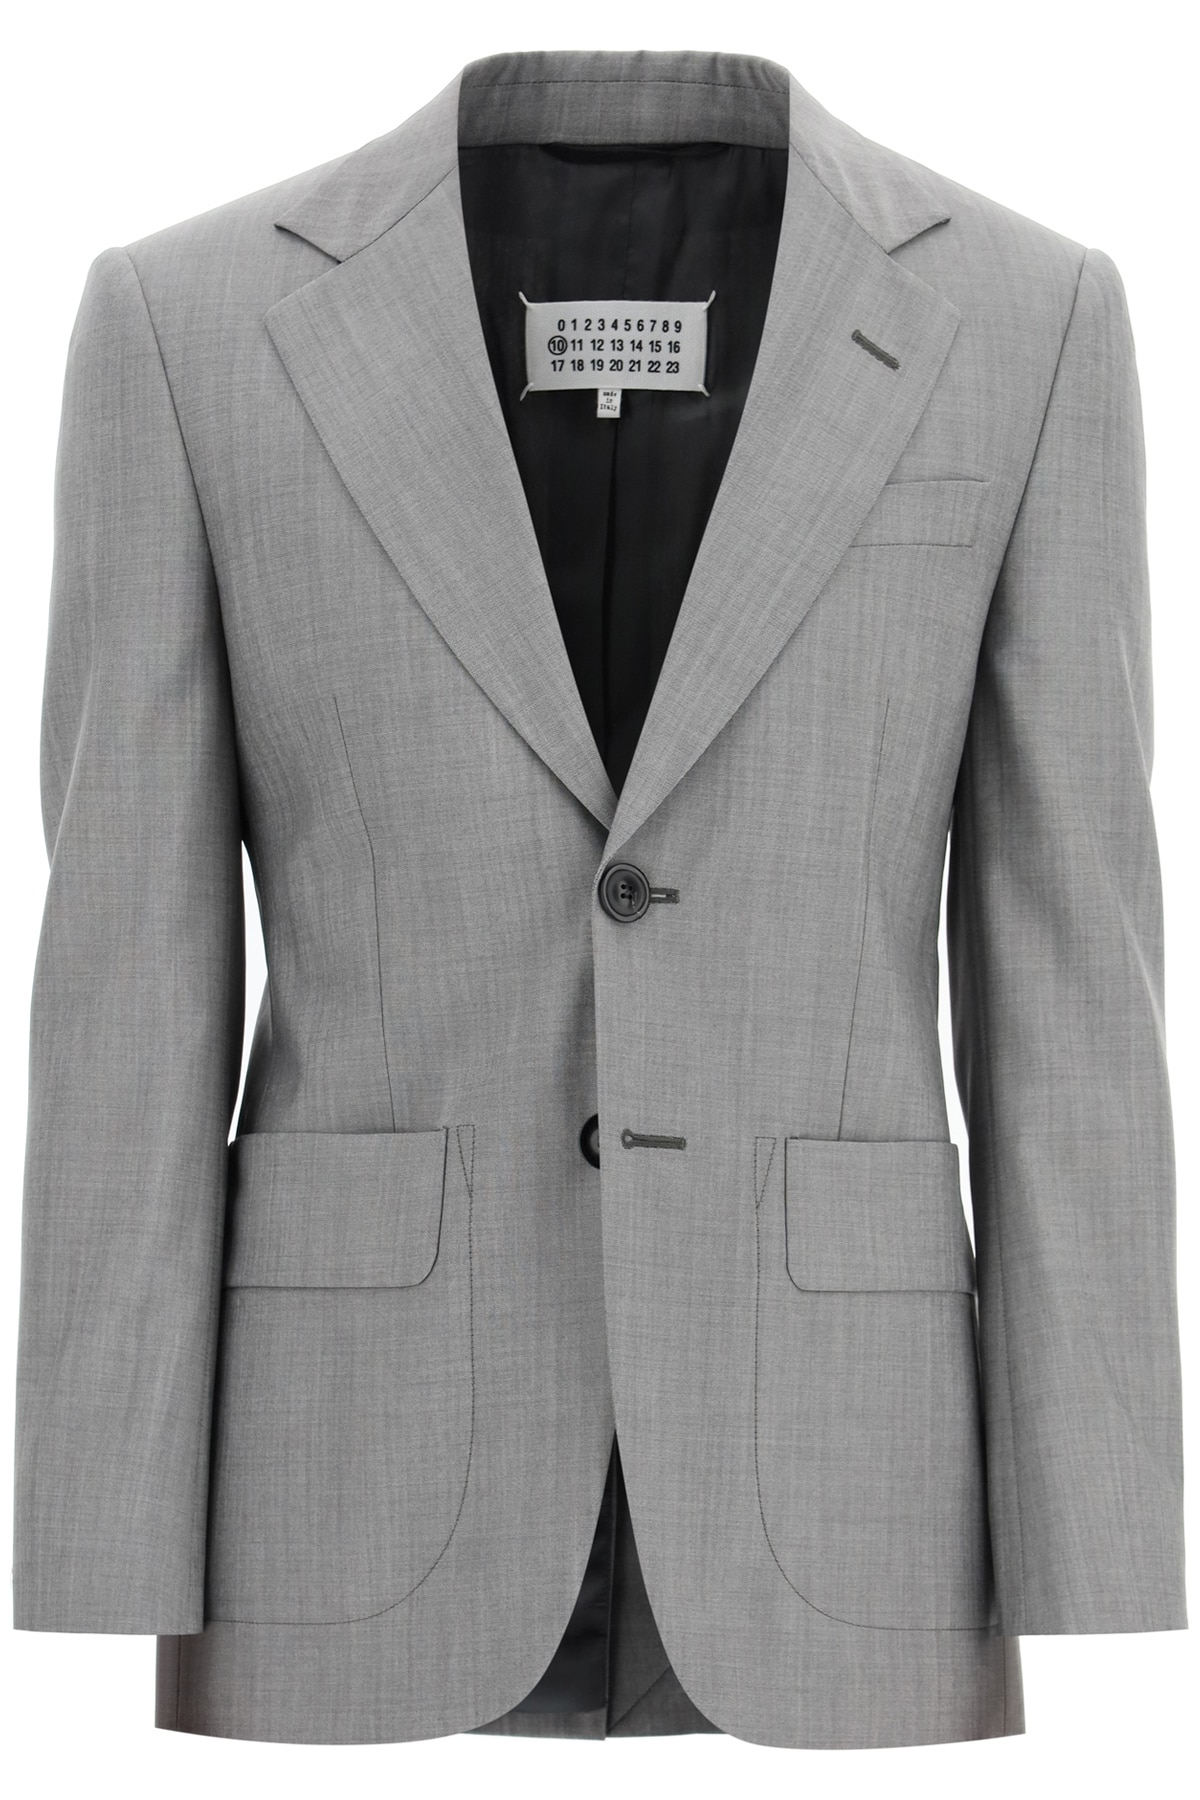 MAISON MARGIELA CLASSIC MOHAIR WOOL JACKET 48 Grey Wool